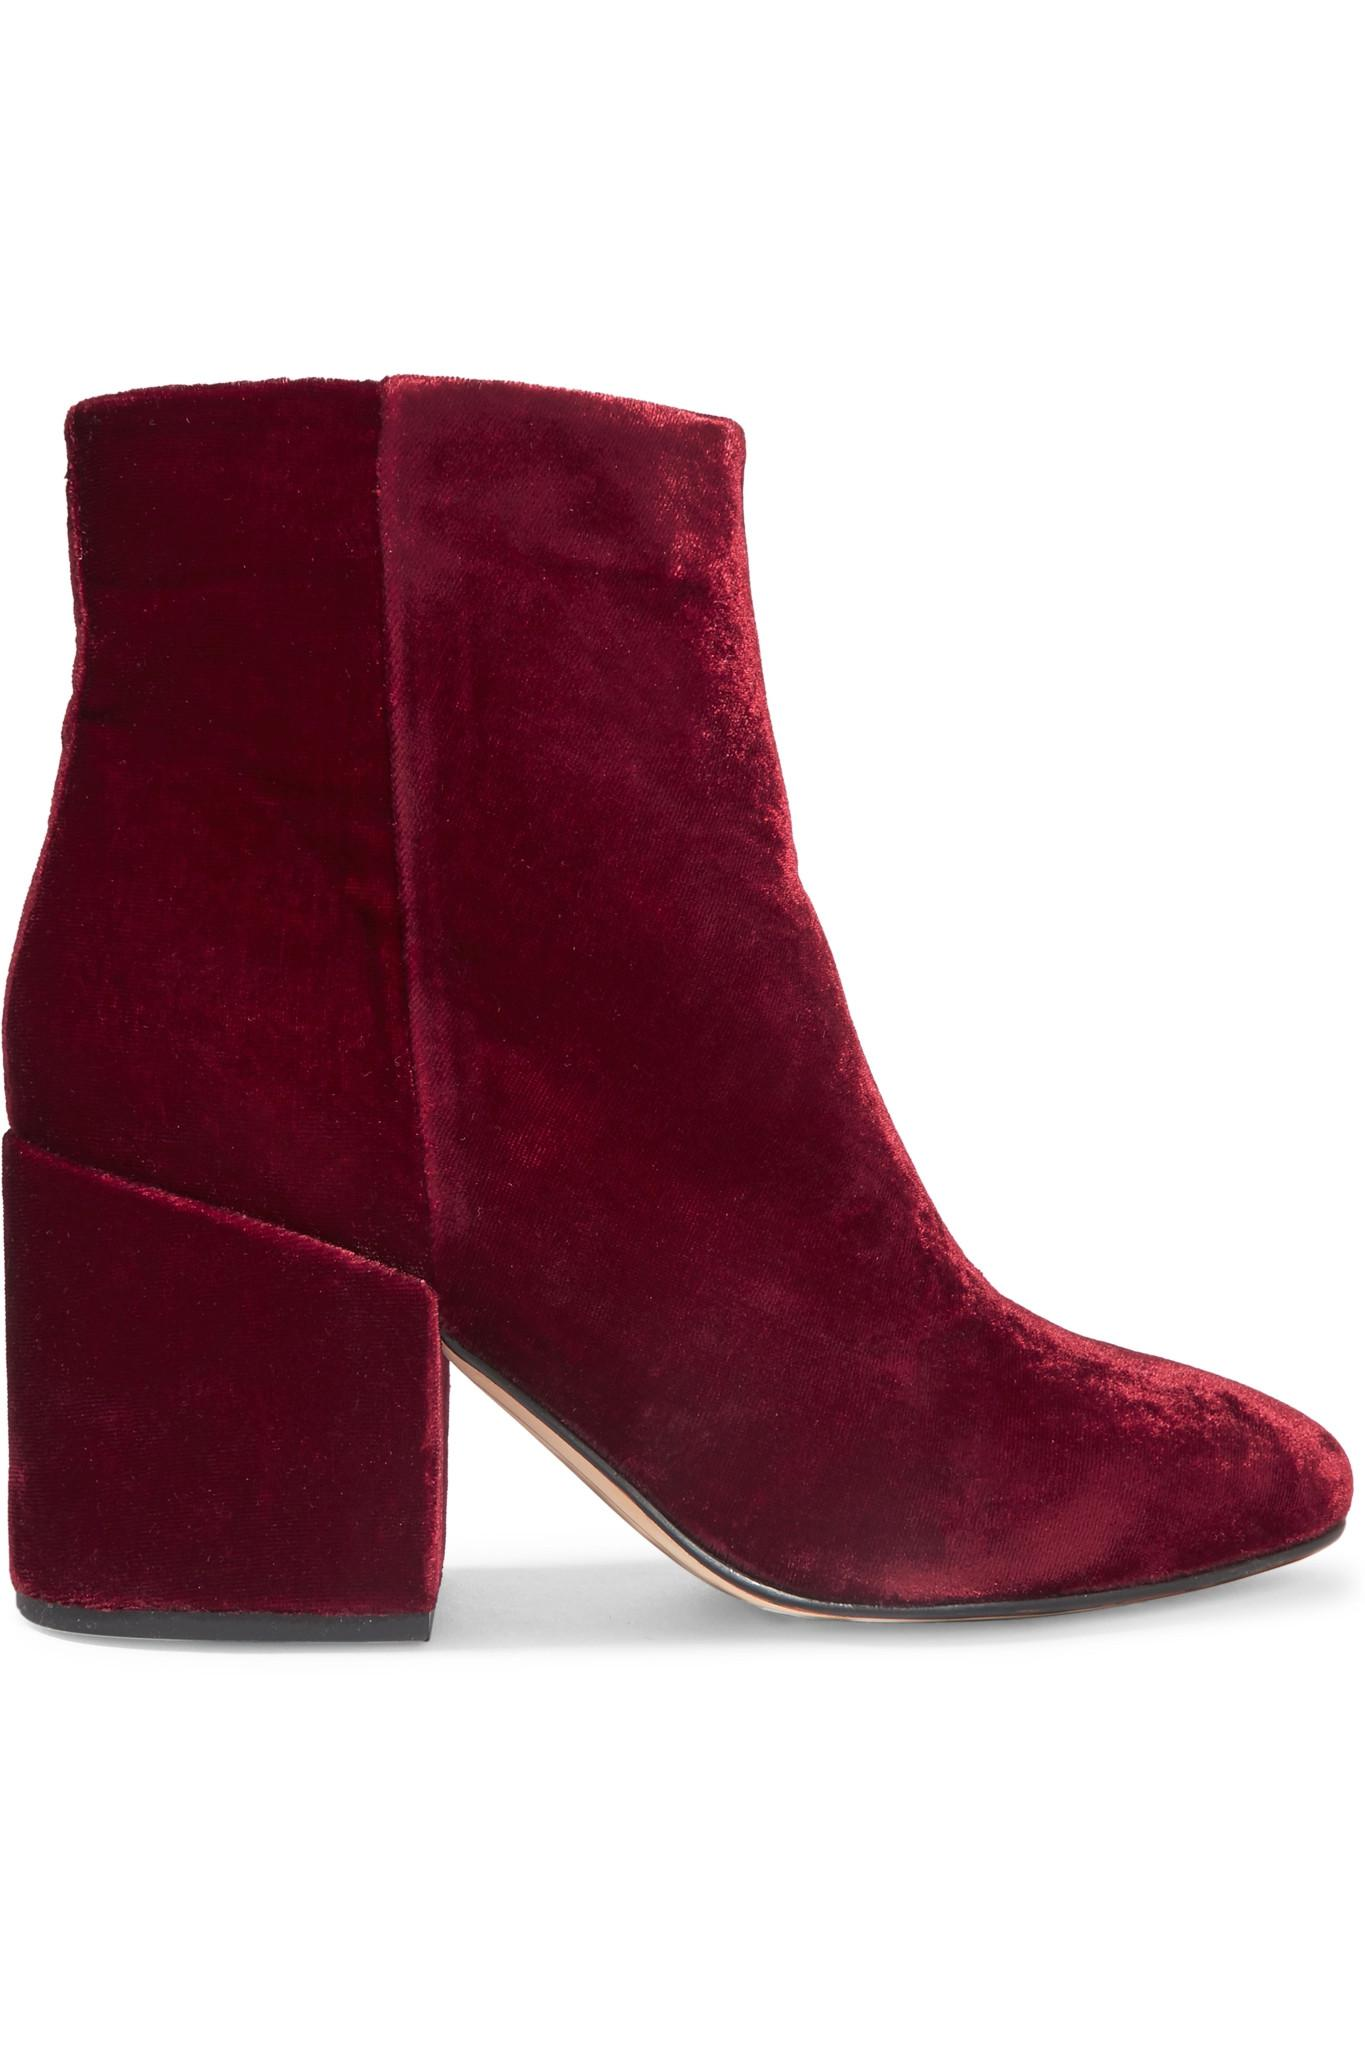 a7a97e284e33a Lyst - Sam Edelman Taye Velvet Ankle Boots in Purple